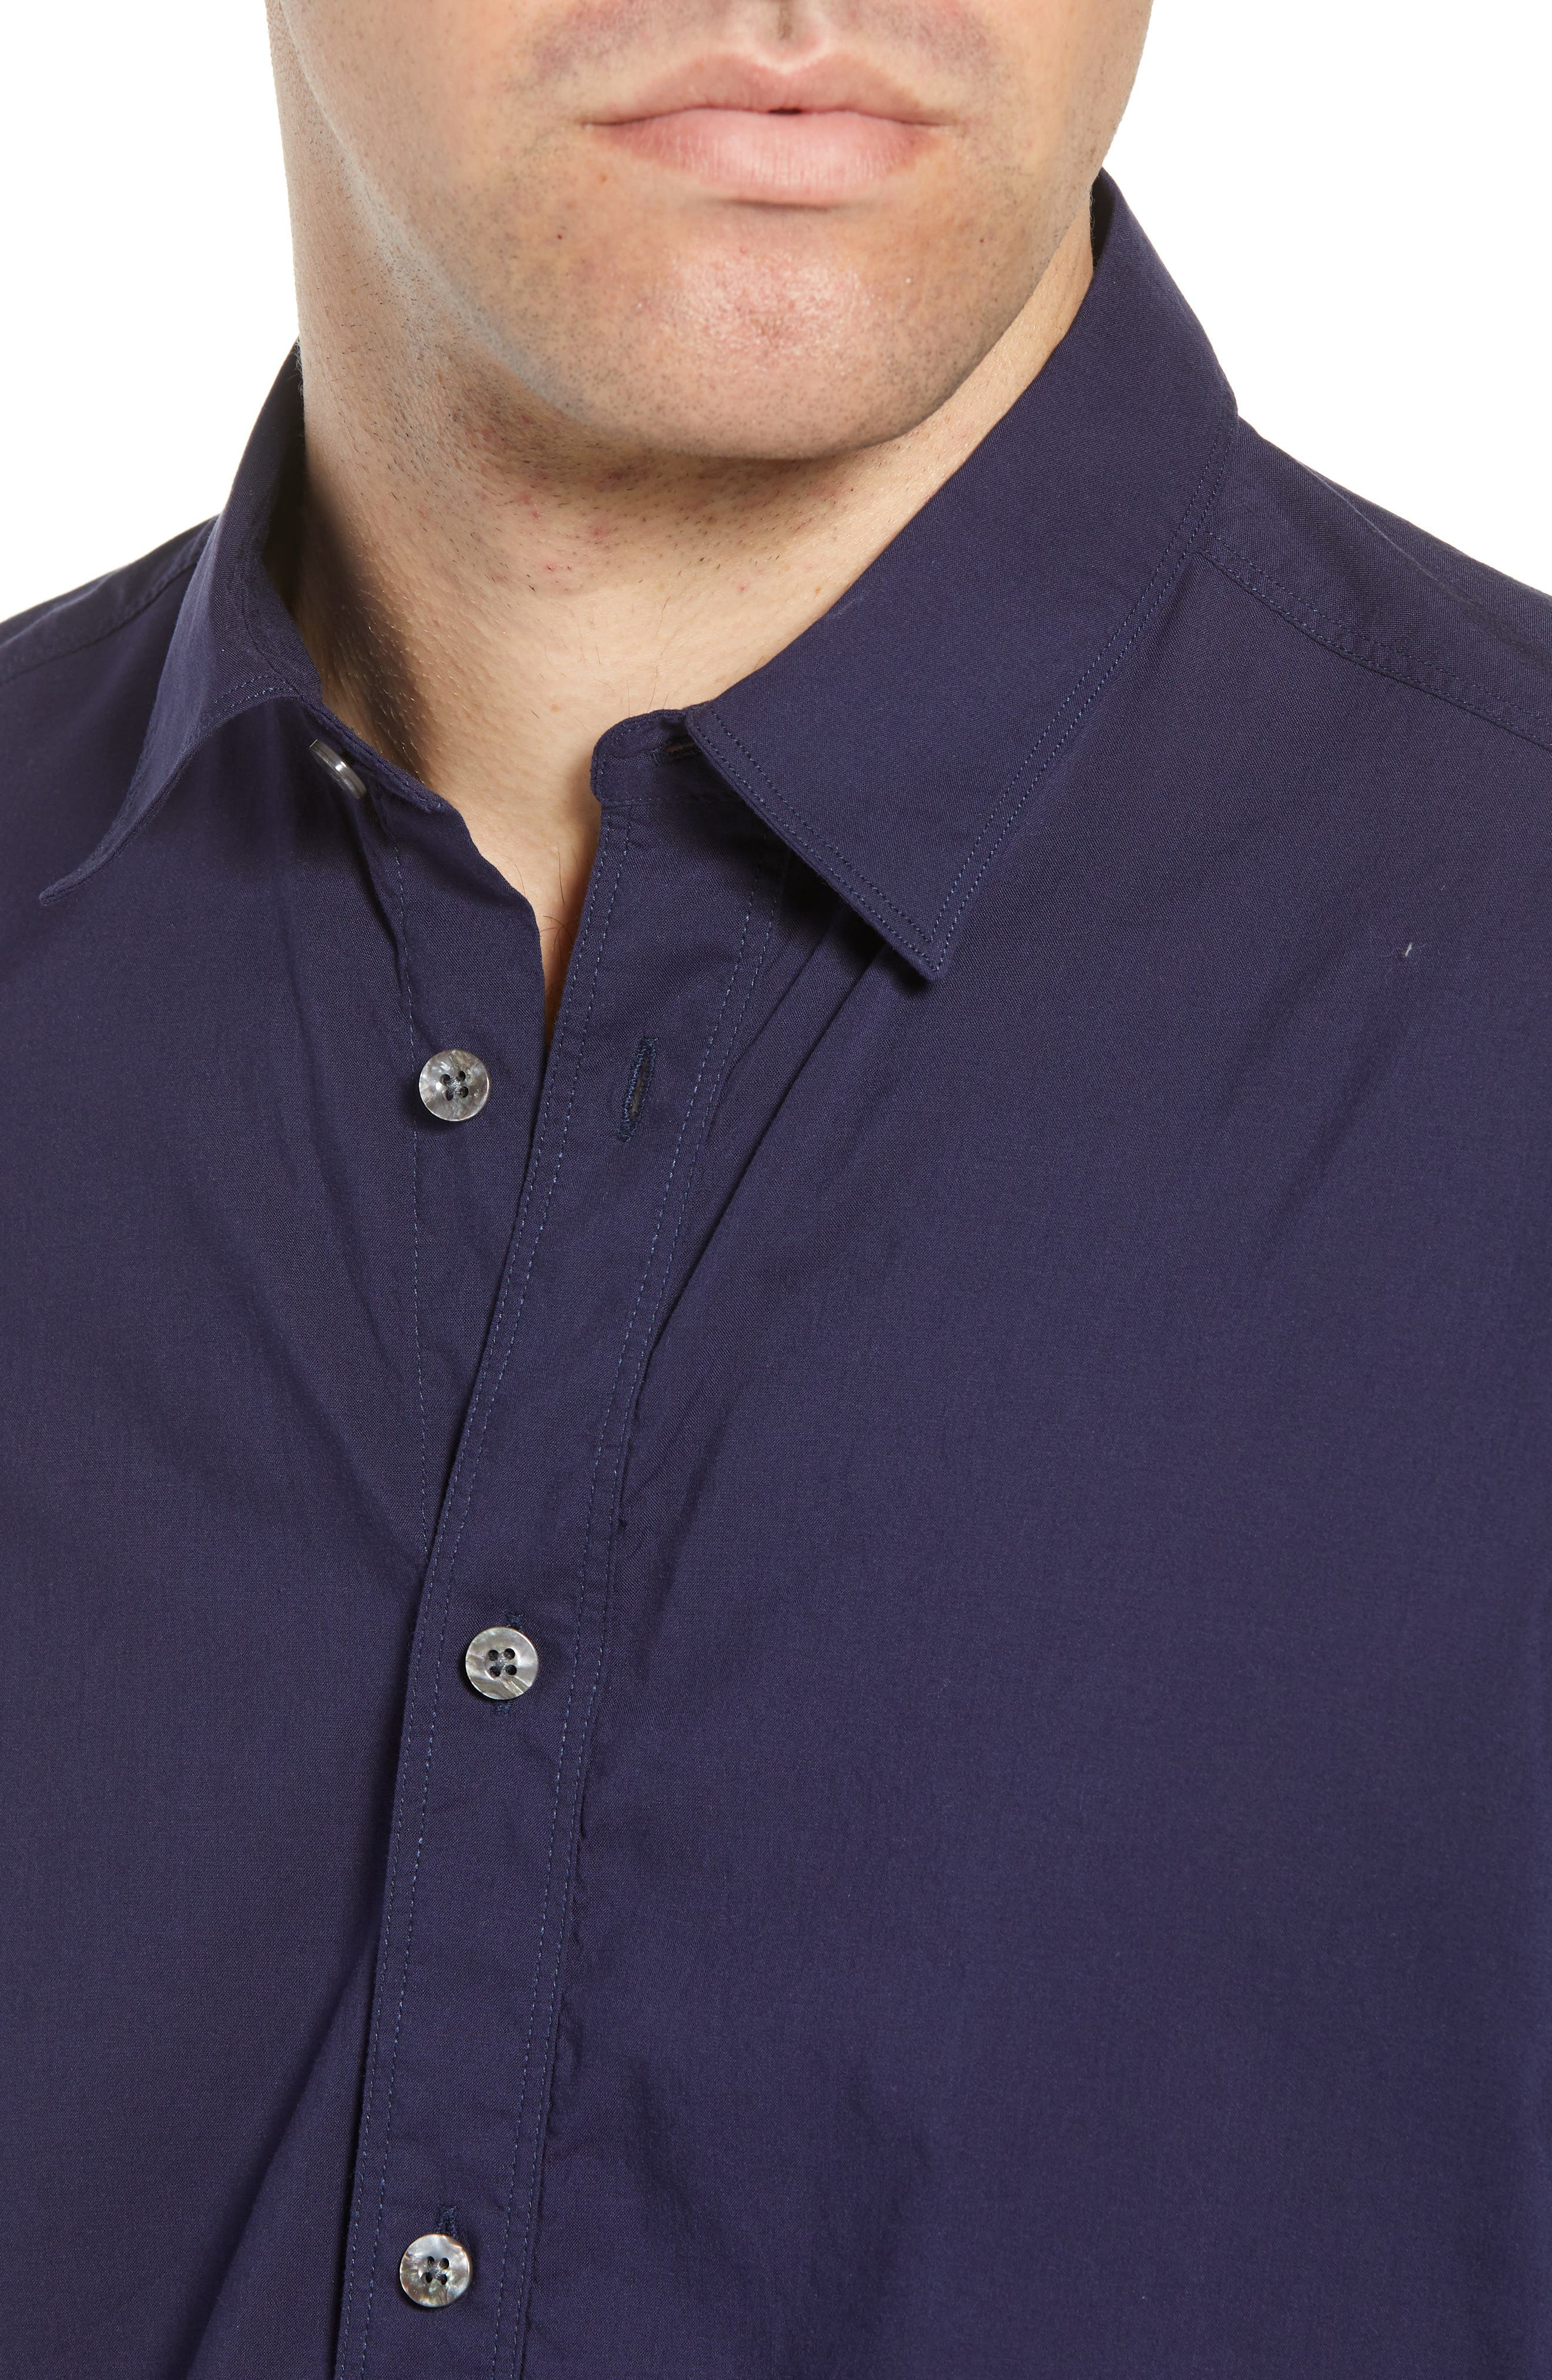 Pacifica Regular Fit Solid Sport Shirt,                             Alternate thumbnail 4, color,                             410